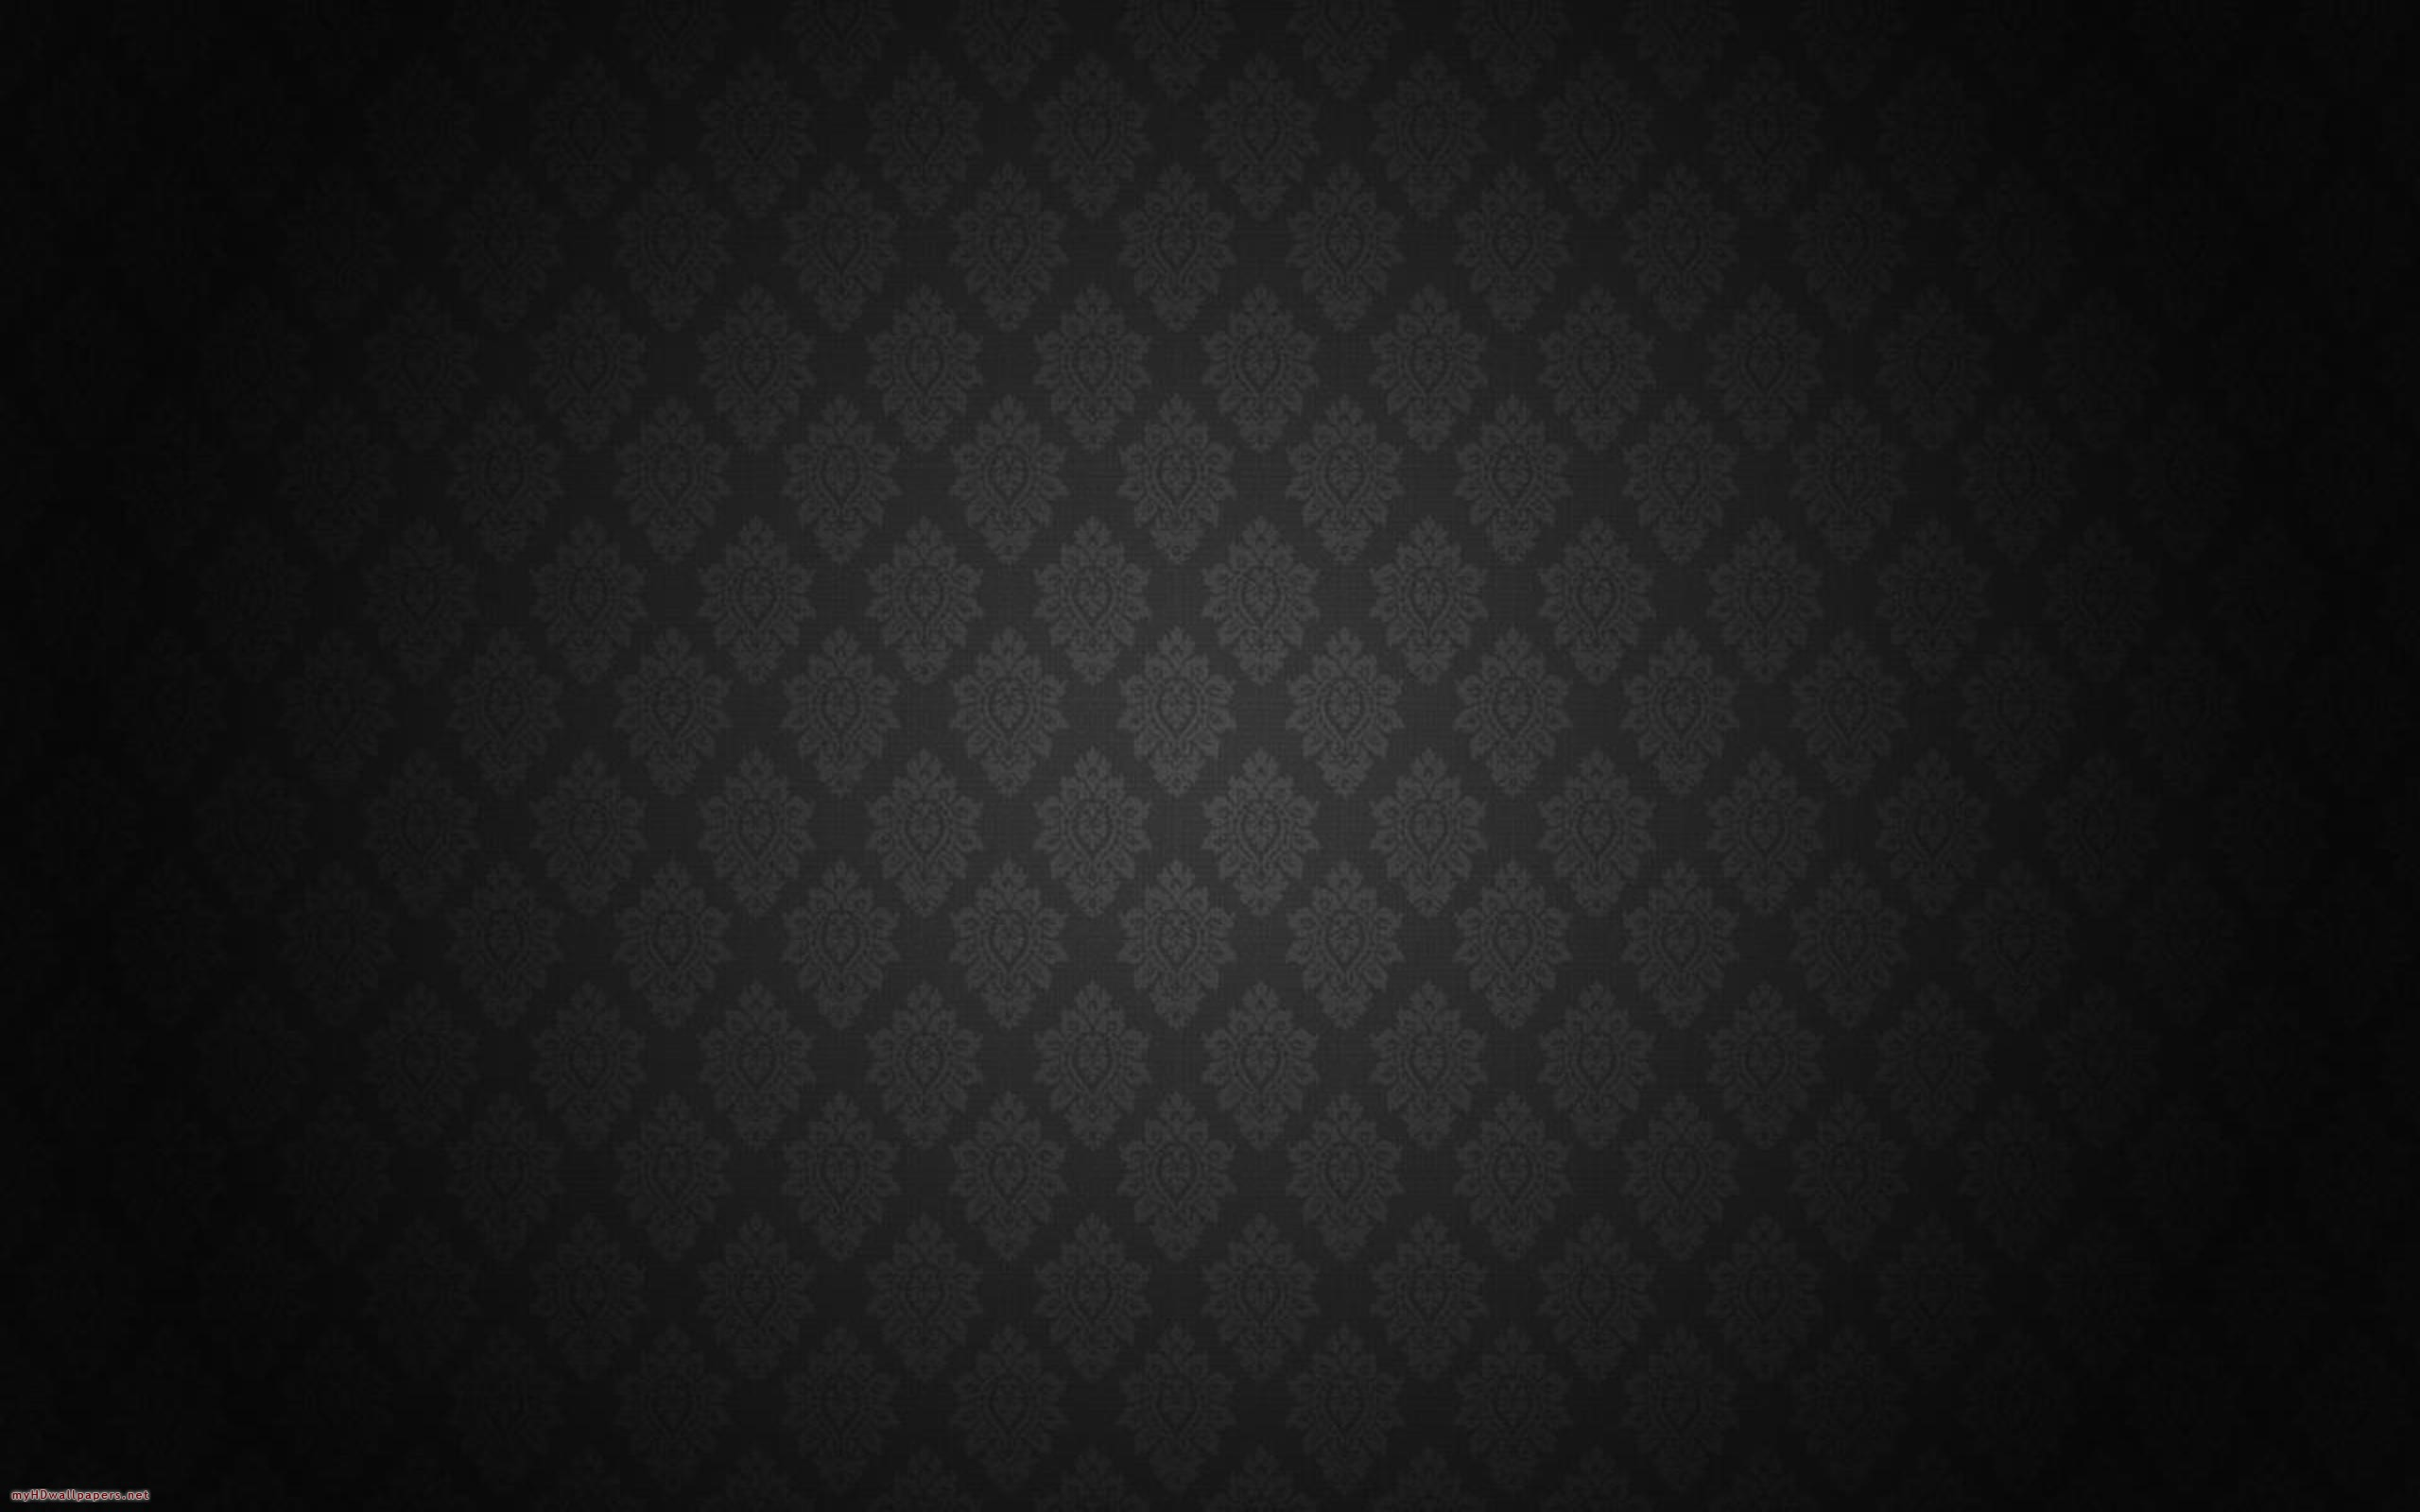 ... Black-and-white-wallpaper-23 ...